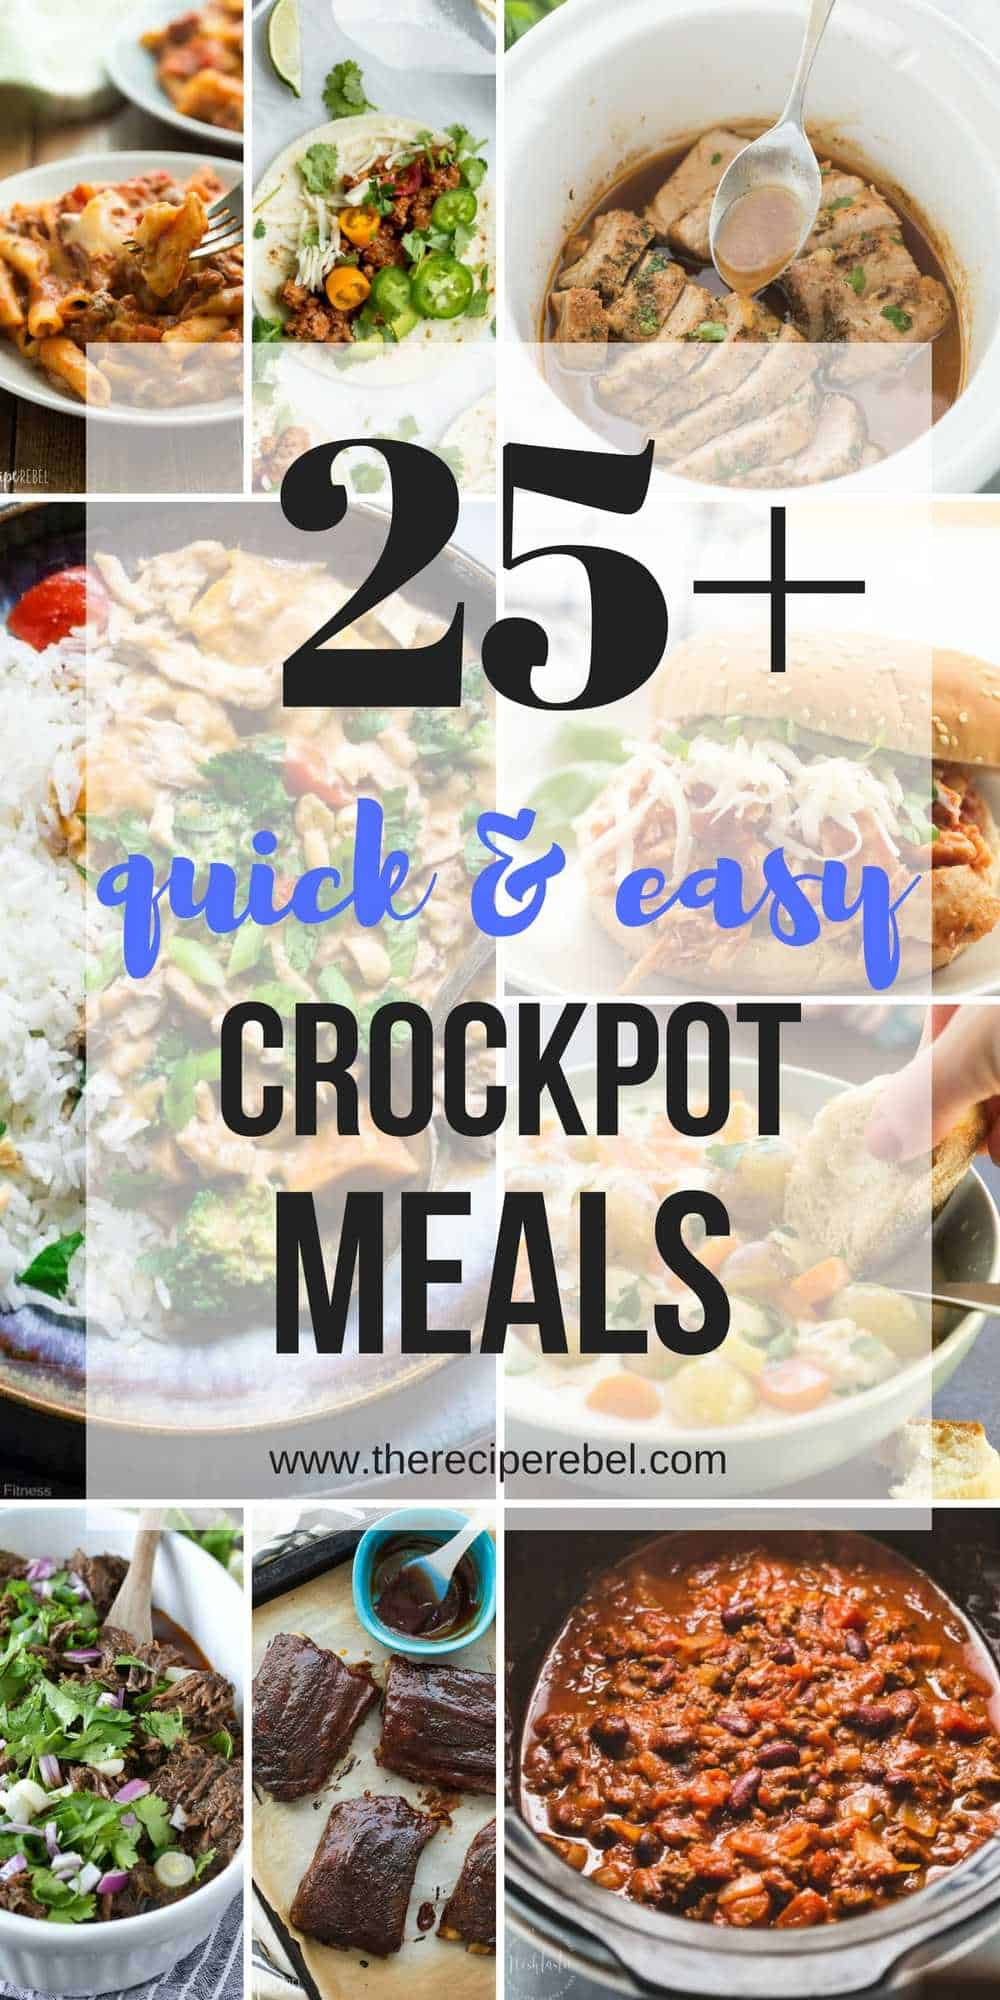 This EASY Crockpot Meals are perfect for those busy weekdays when it's a struggle to get dinner on the table, cozy and comforting for cooler days, or light and fresh for summer days. There's something for everyone! Crockpot pasta, soups, tacos, slow cooker ribs, pork, chicken or beef. TONS of easy crockpot dinners.